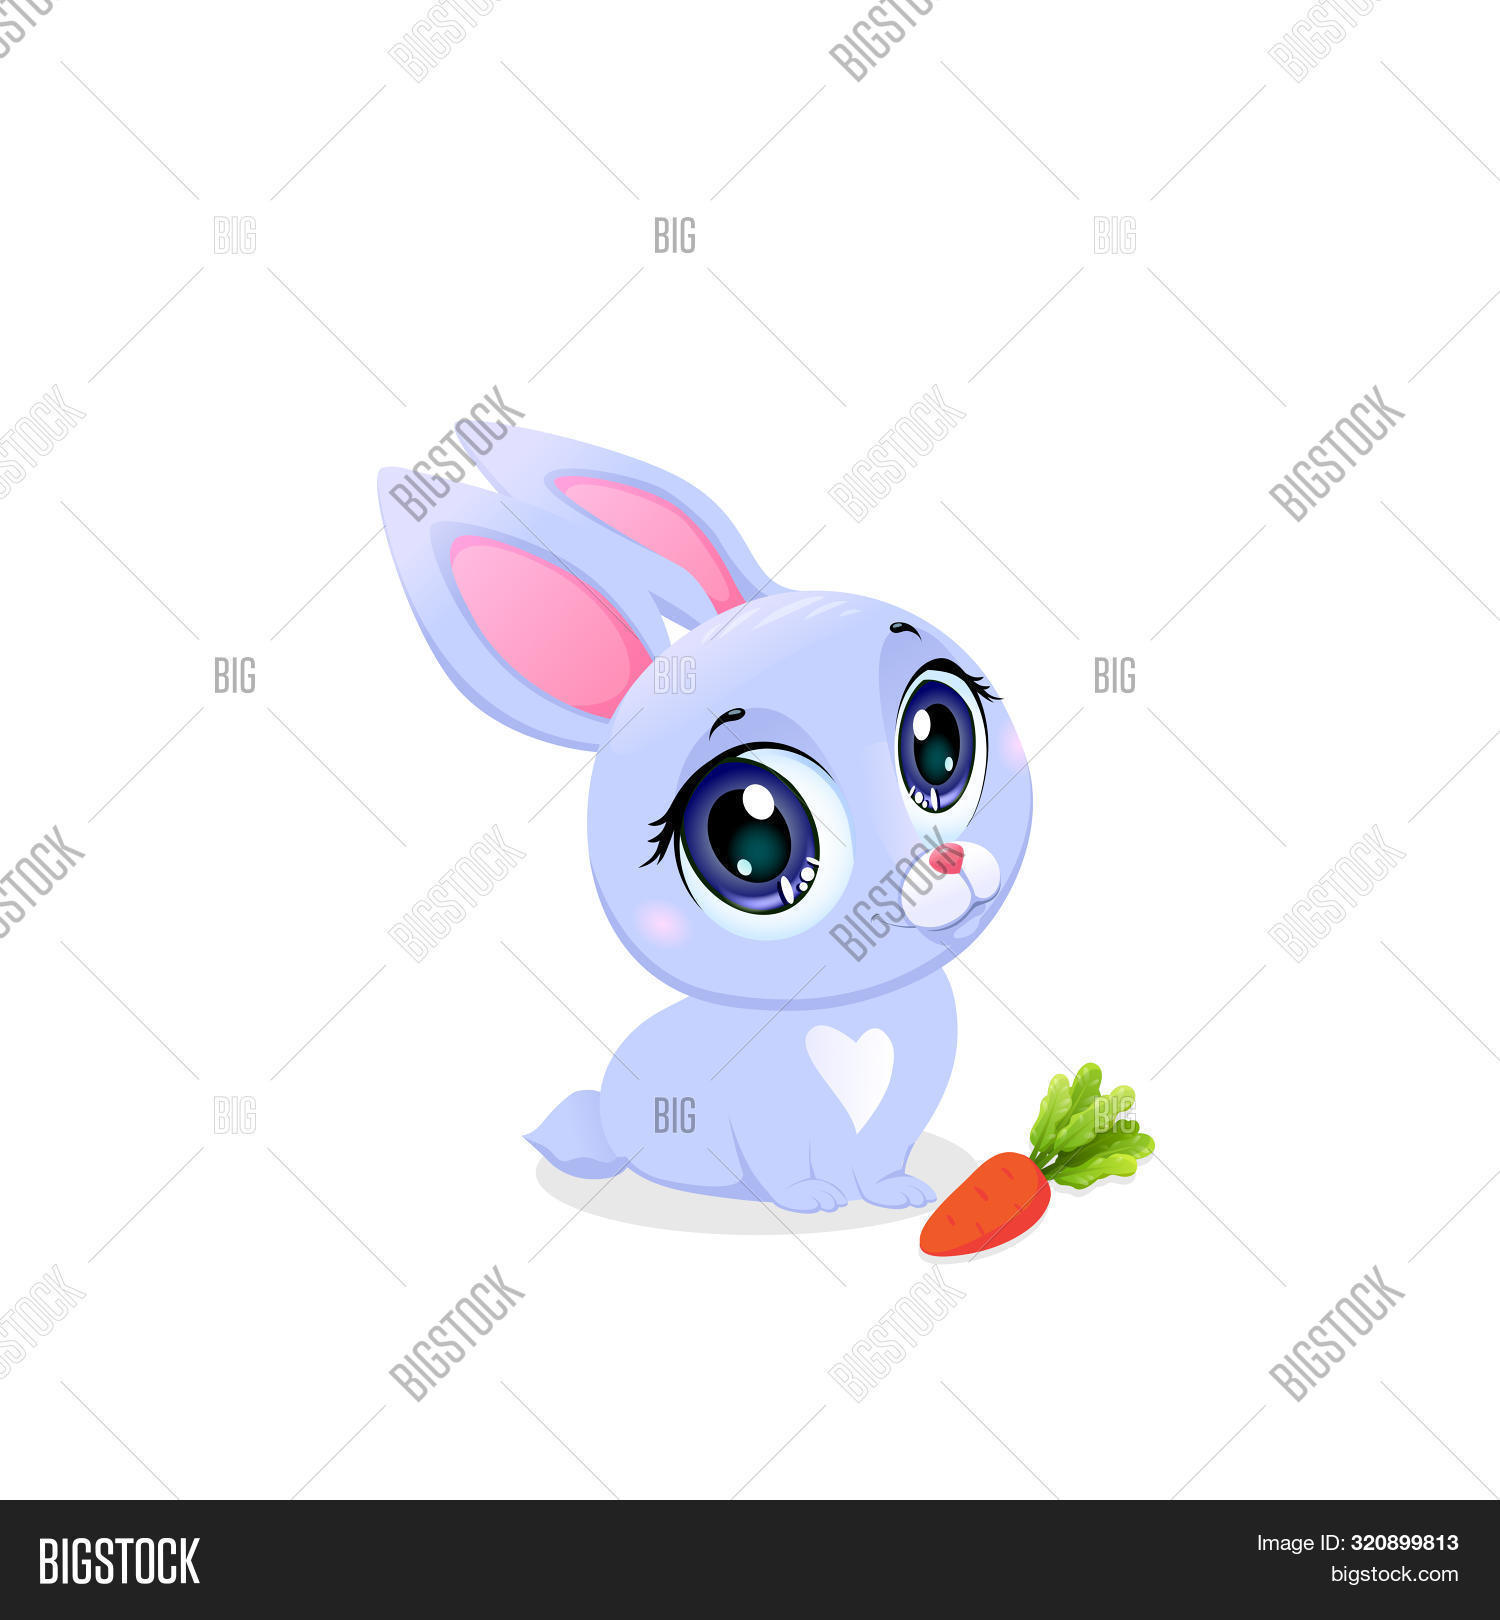 Cute Bunny Carrot Image Photo Free Trial Bigstock